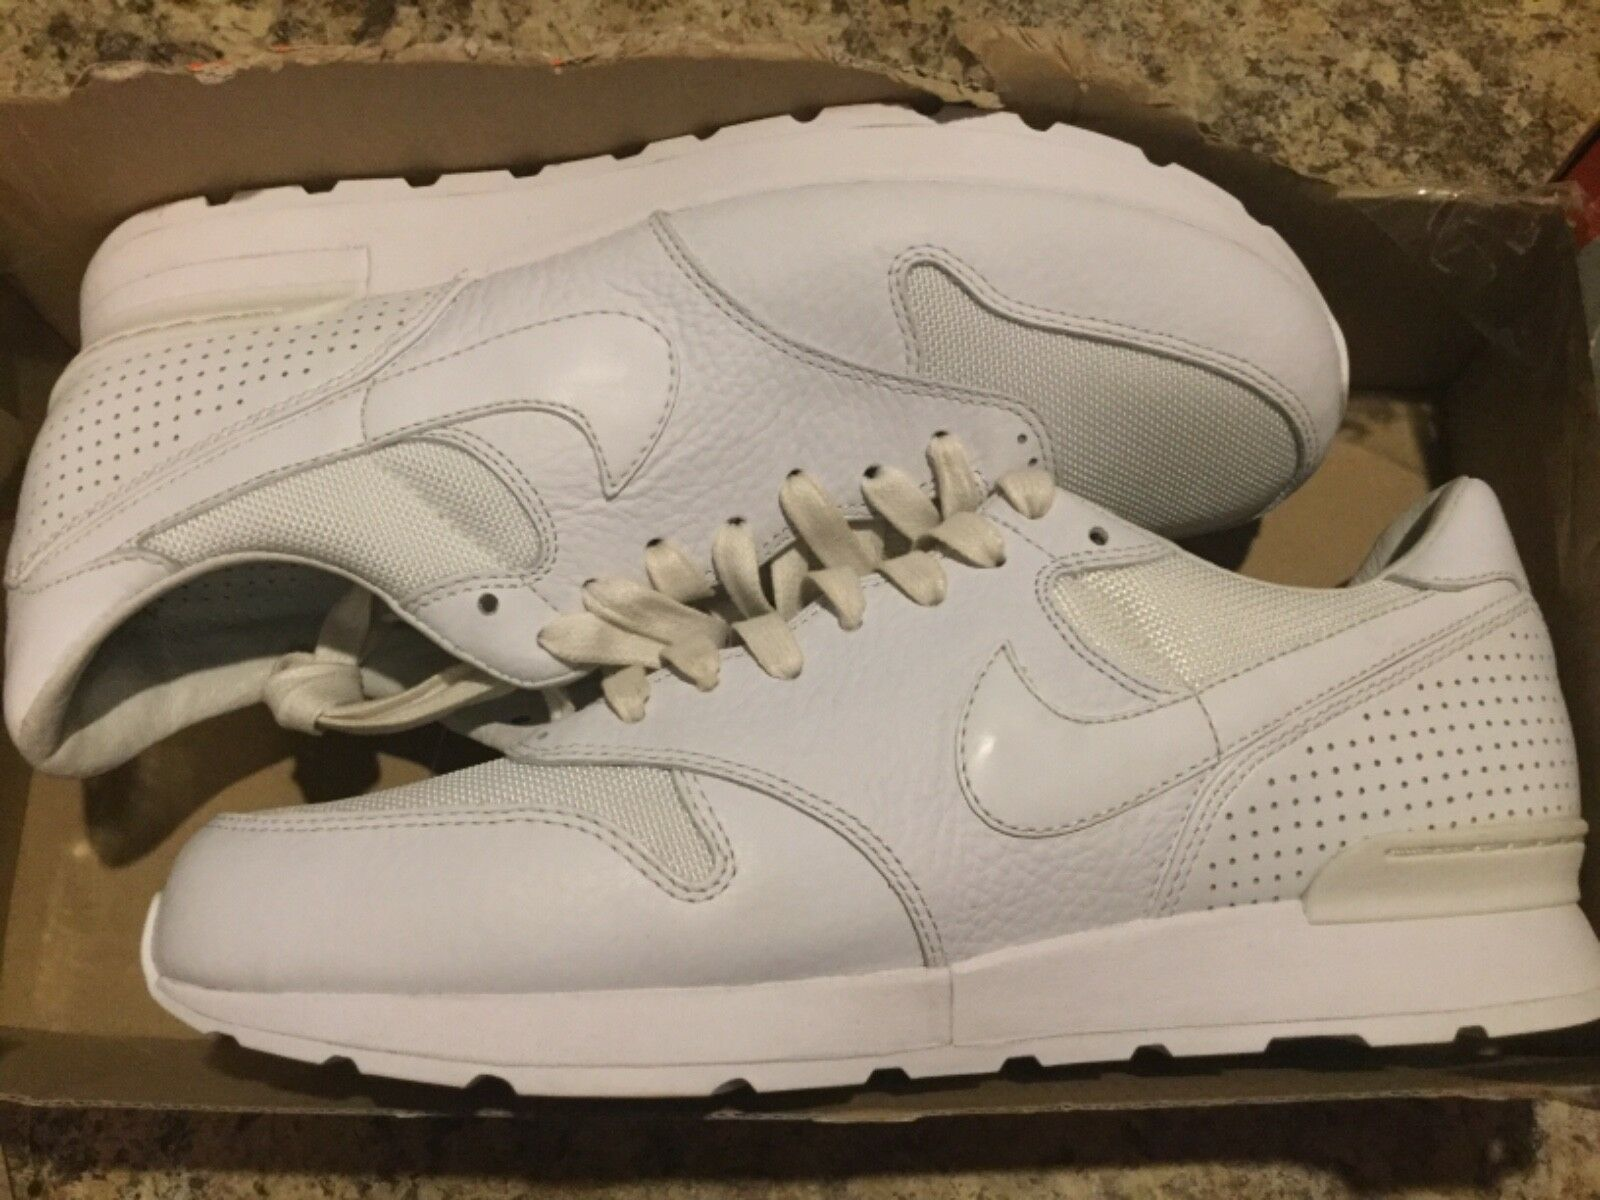 New Mens Nike Air Zoom Epic Luxe alll white Run Running shoes 876140-100 Sz 9